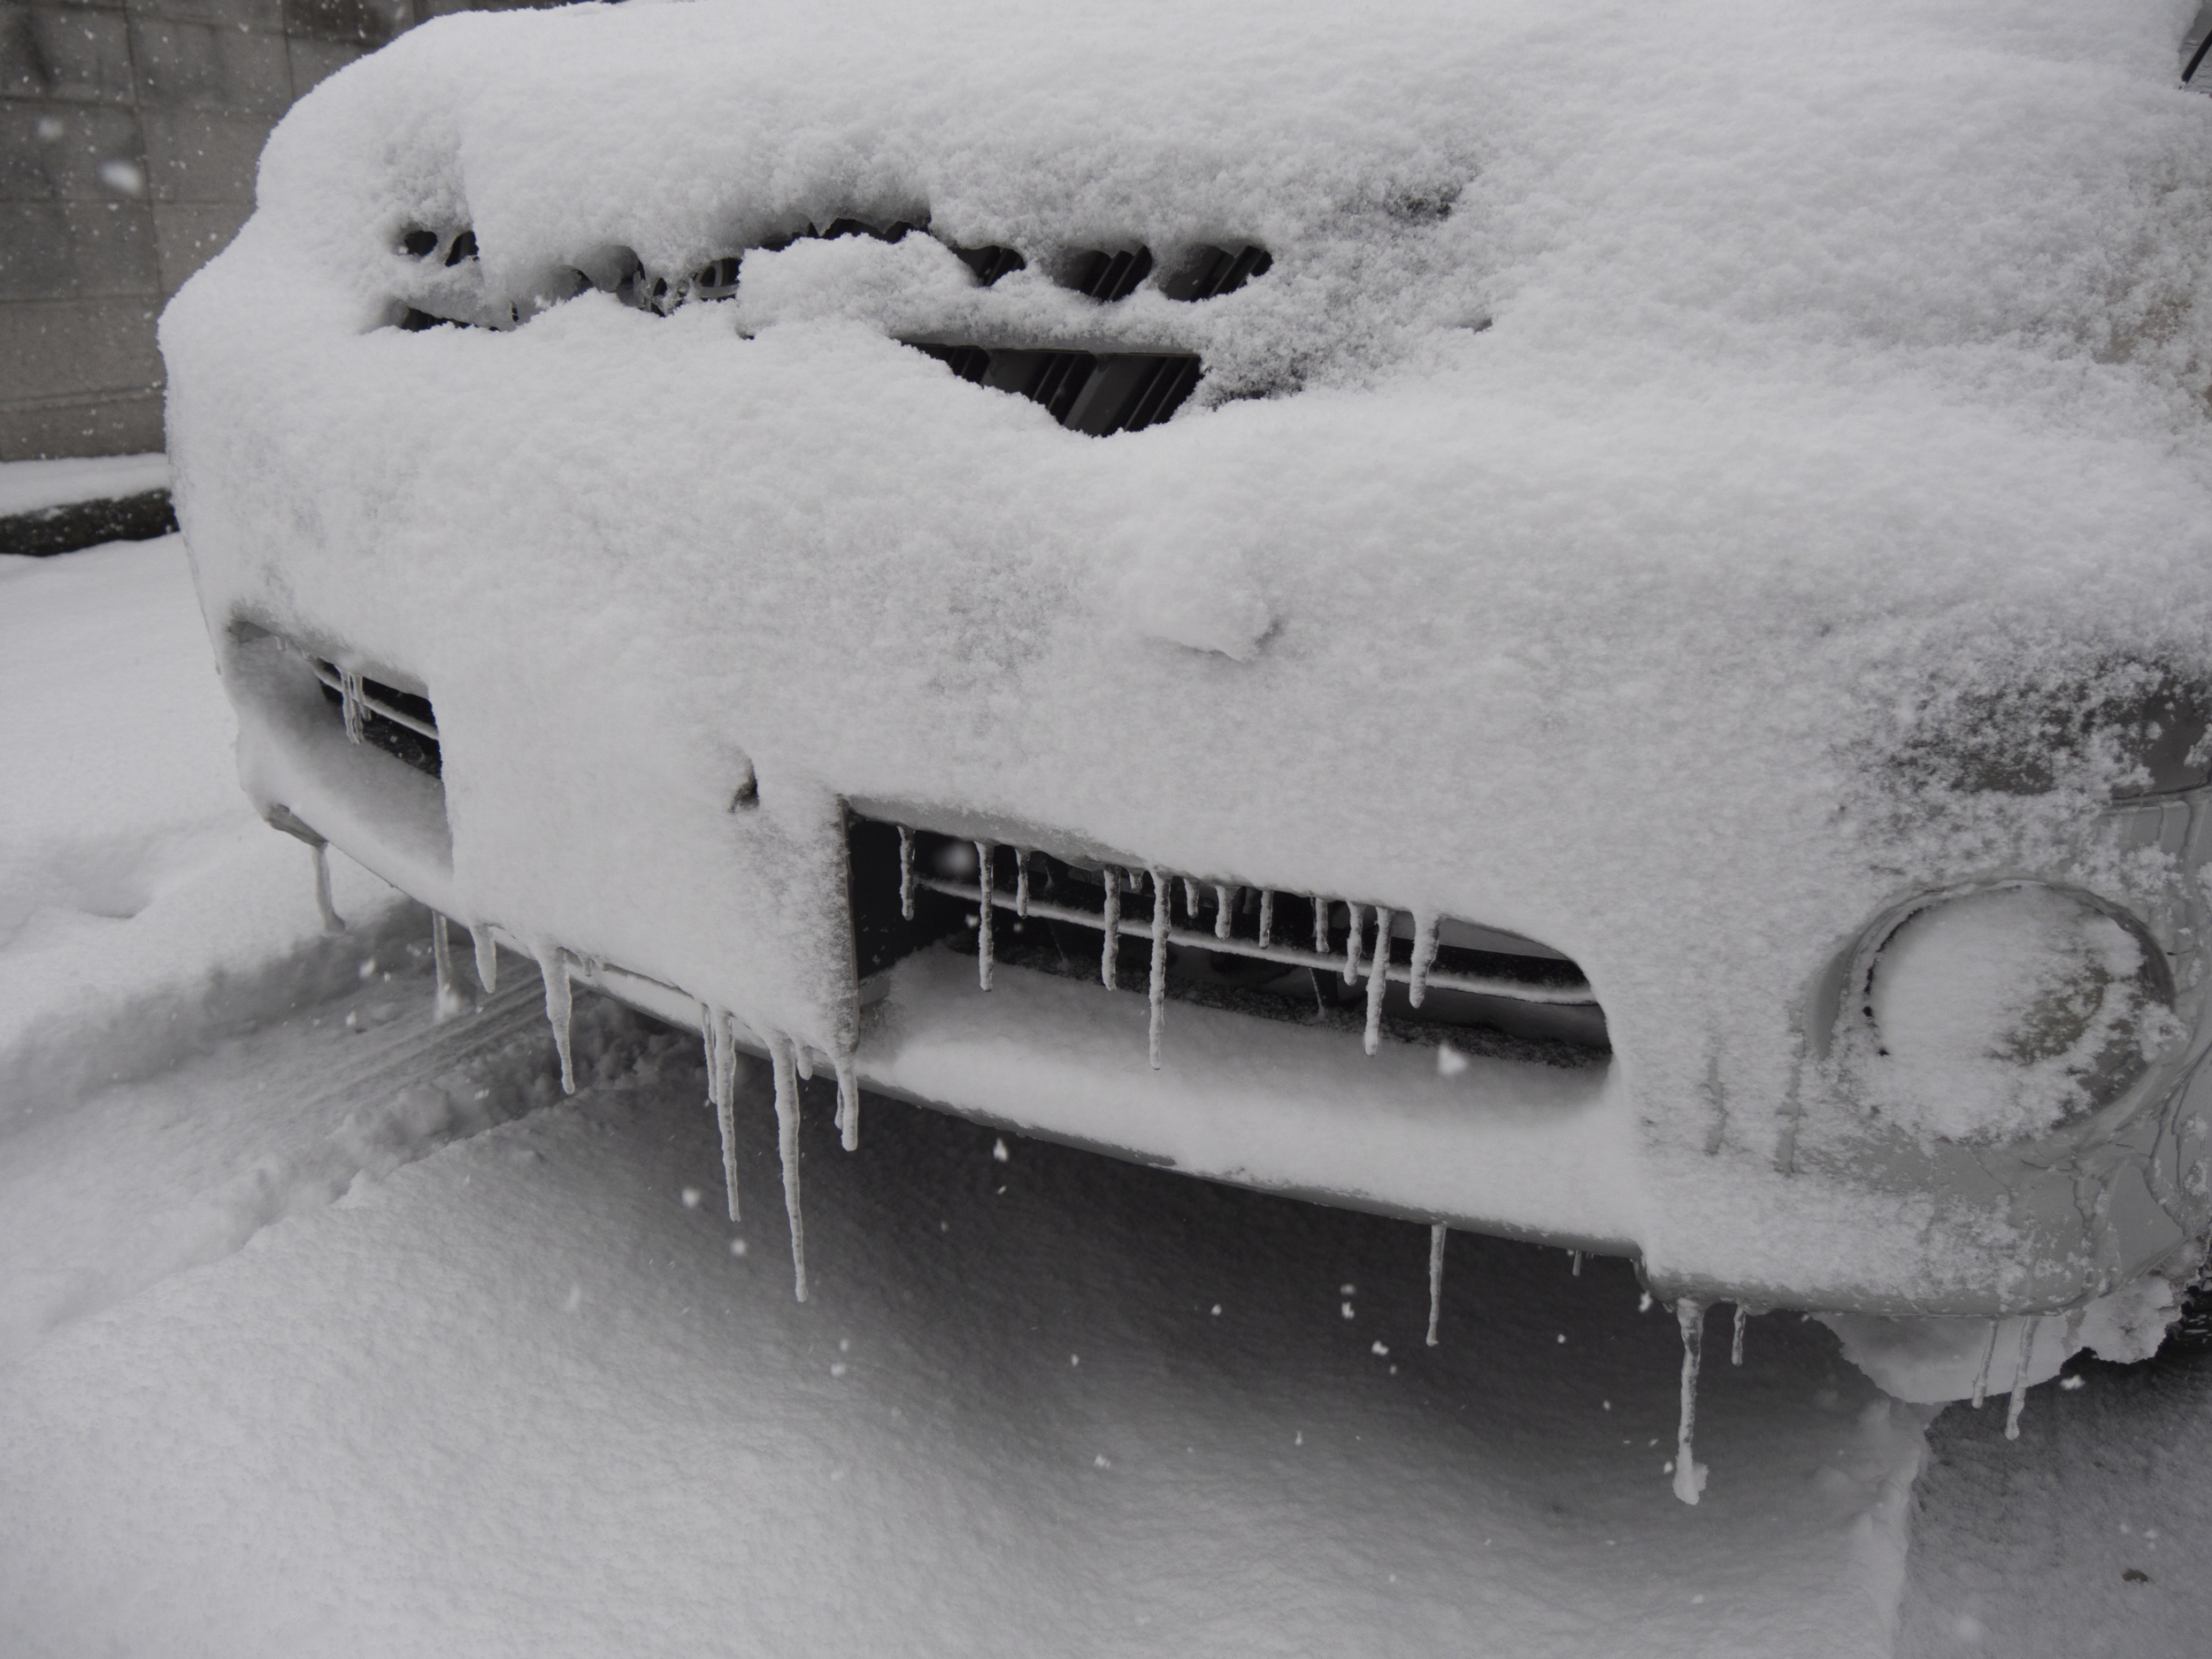 Icicles on cars! 車につらら!